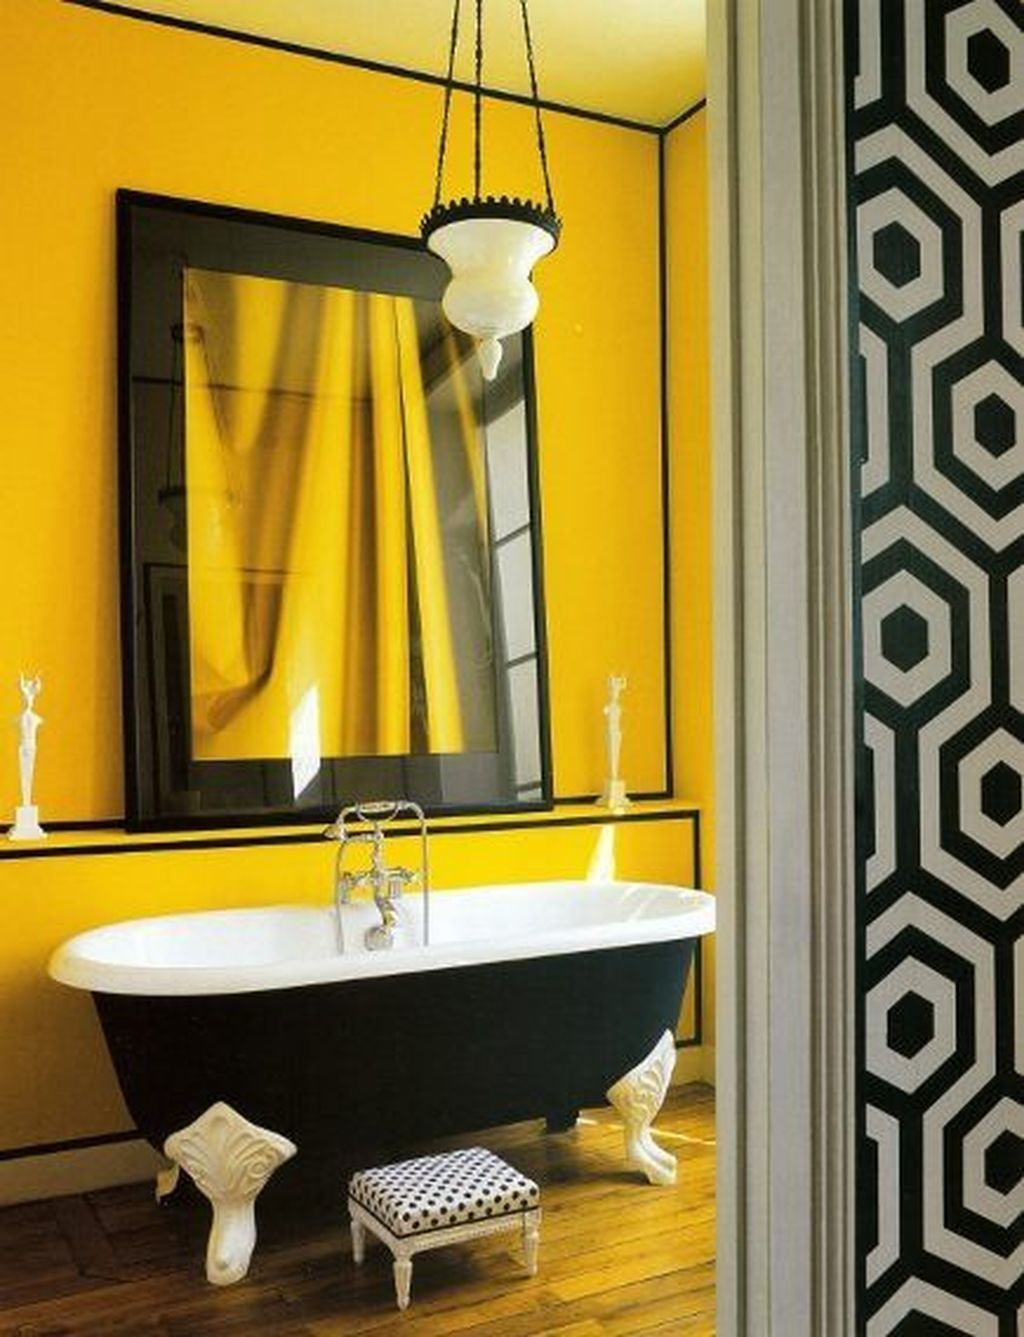 44 lovely color interior design ideas with images on interior wall colors ideas id=94248